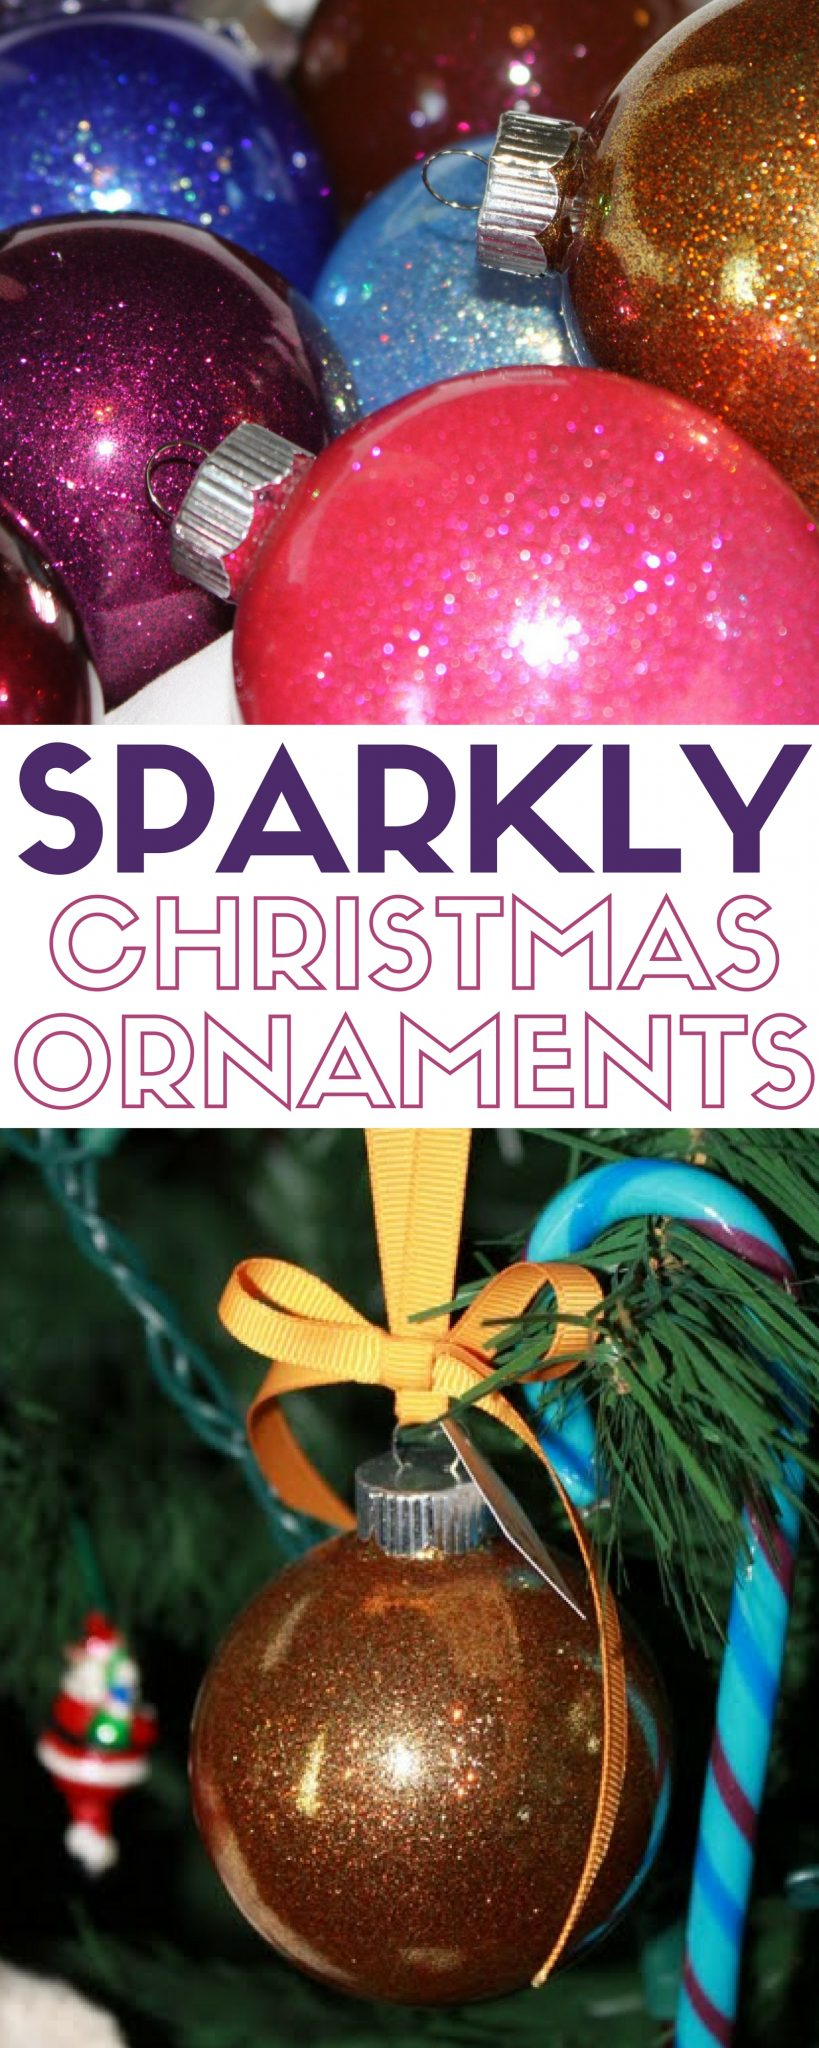 Create a beautiful sparkly Christmas ornament to hang on your Christmas Tree. This handmade keepsake ornament will be a favorite for years to come.